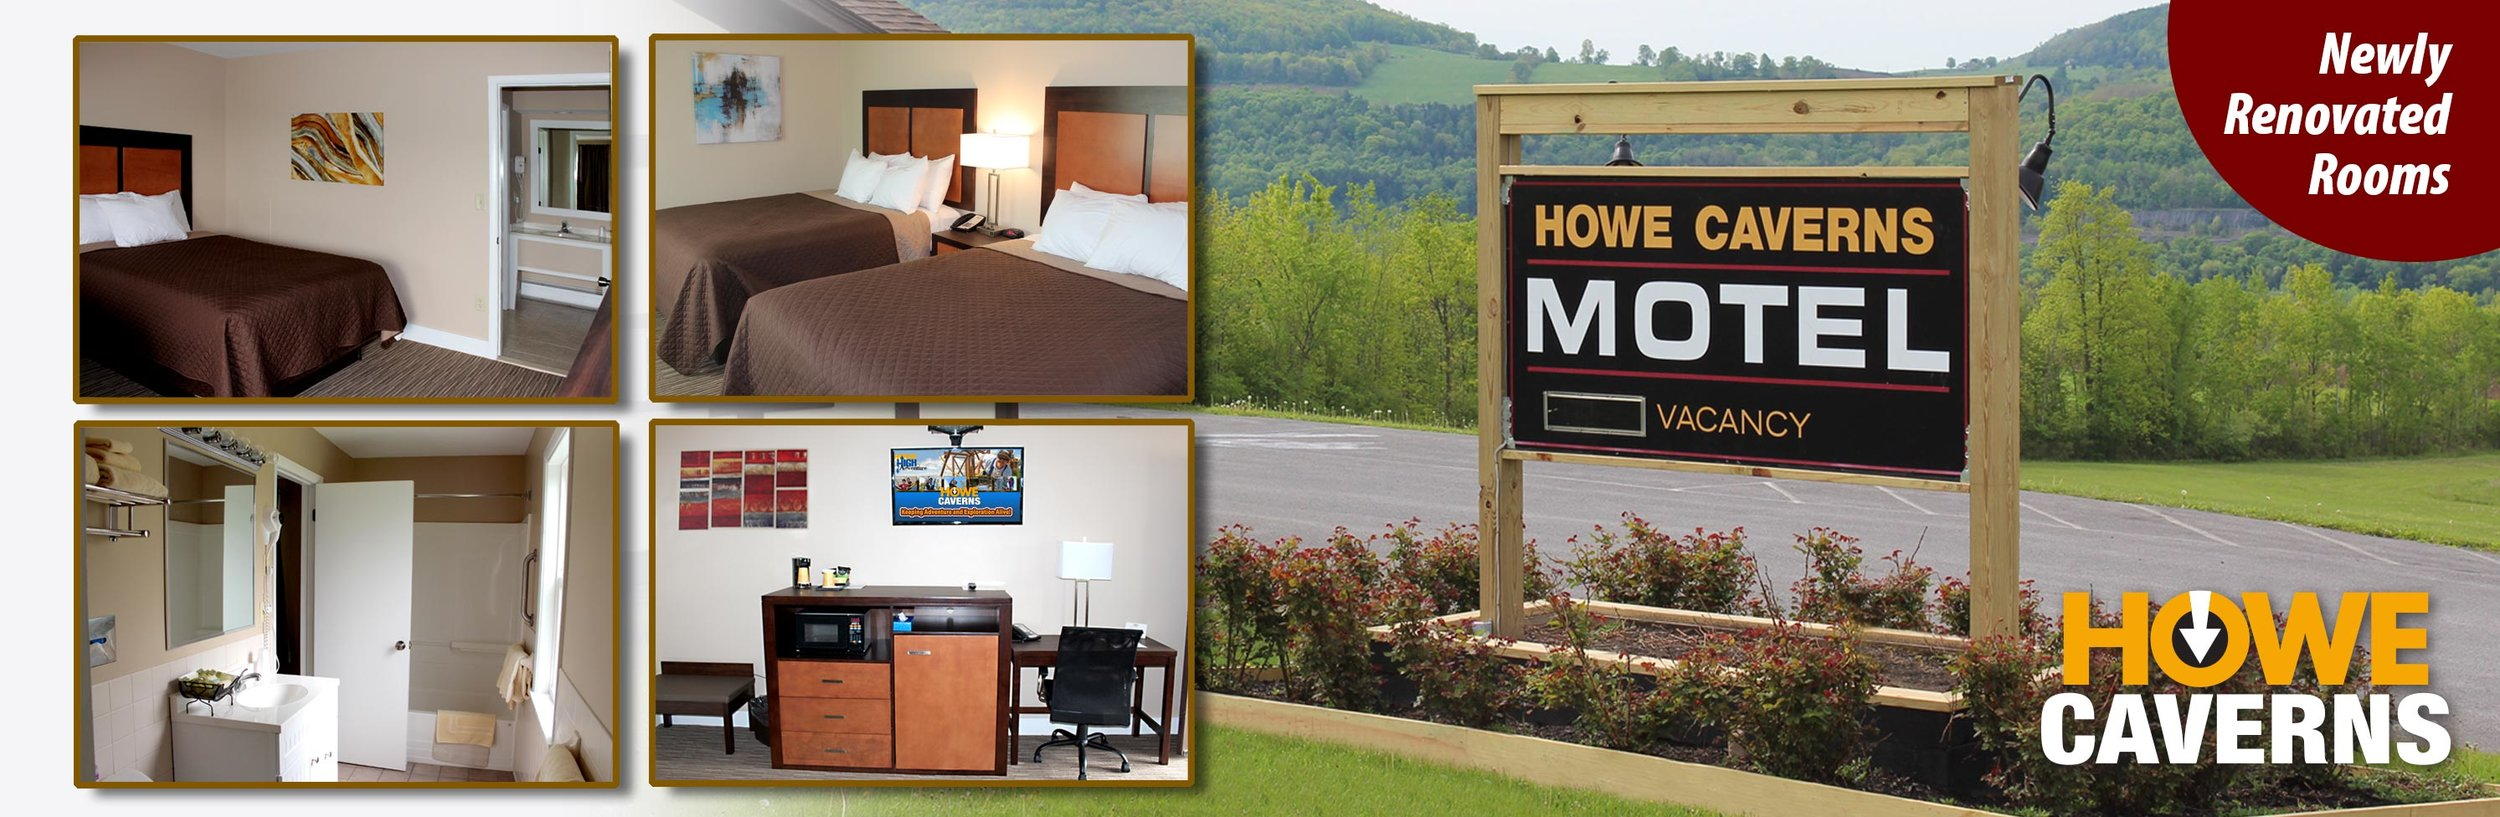 Howe Caverns Motel | Howes Cave, NY